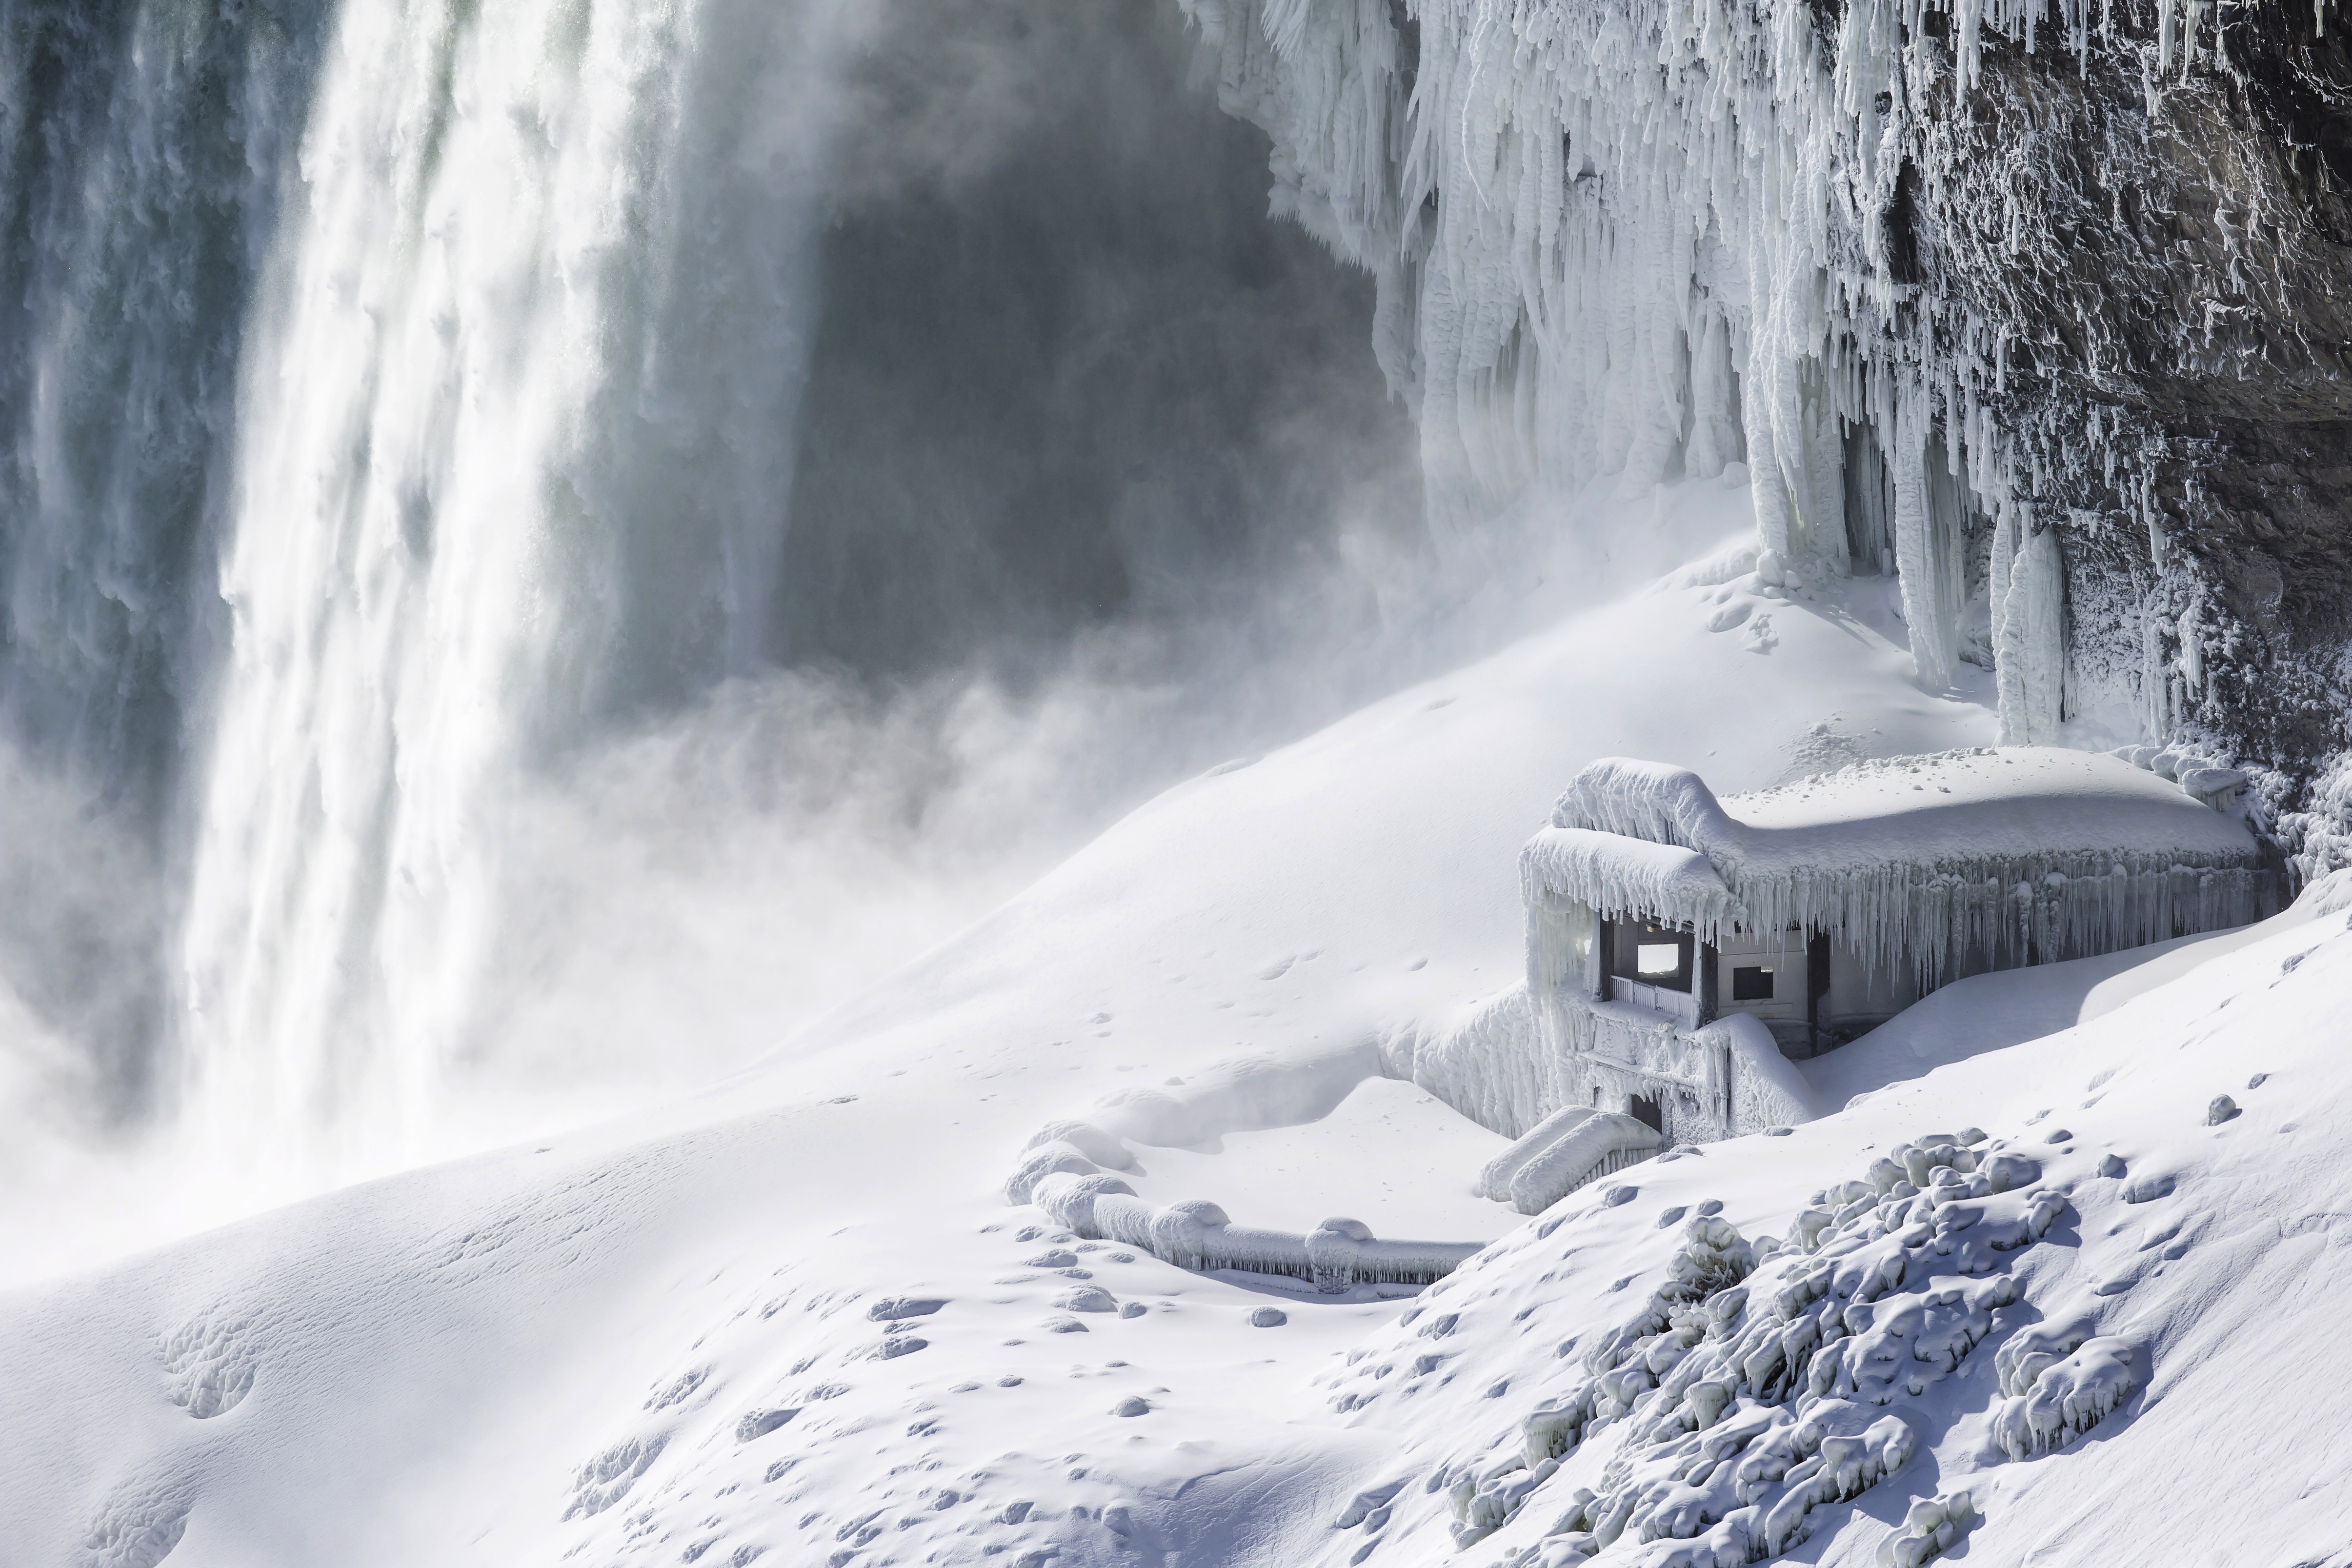 Niagara Falls hasn't been as cold as some places, but cold enough. Credit: PA